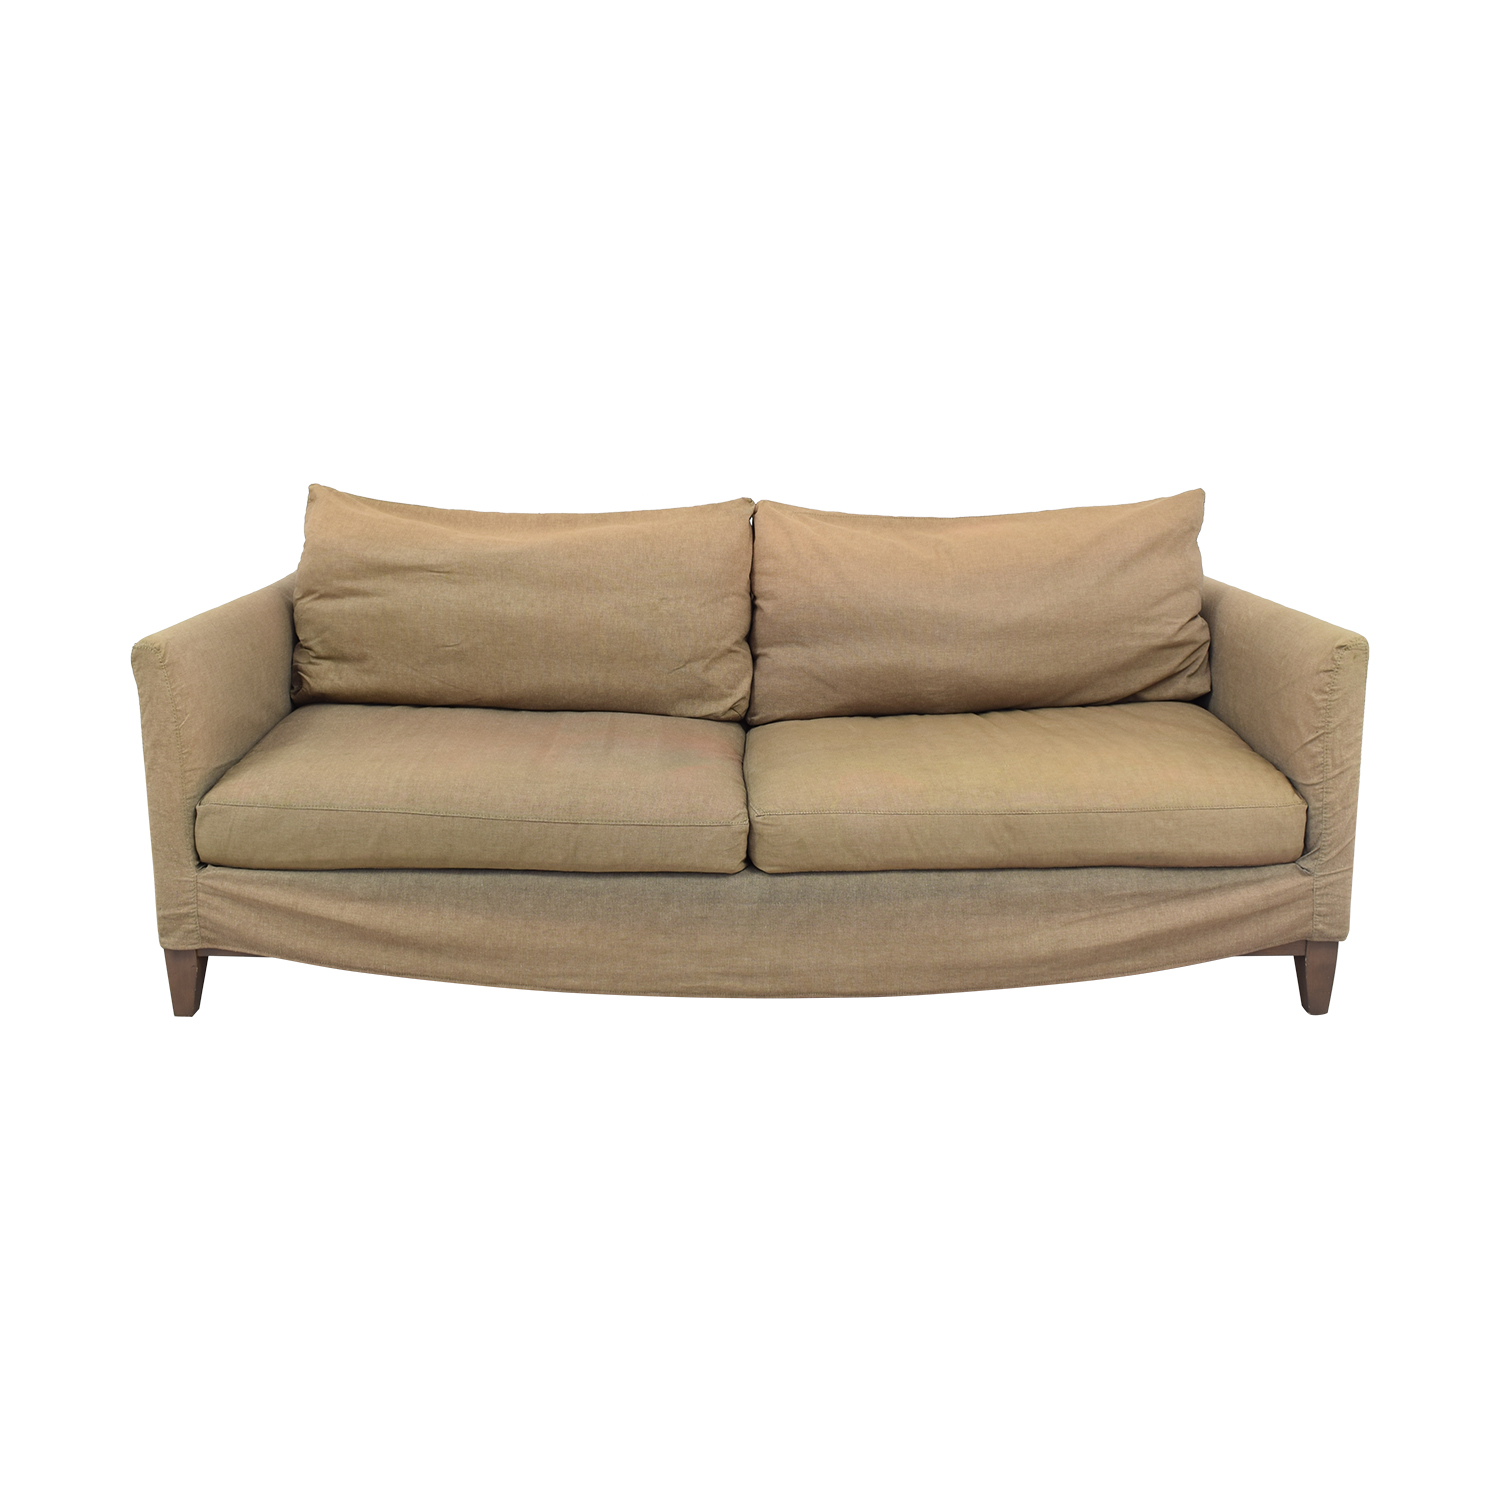 shop ABC Carpet & Home ABC Carpet & Home Cobble Hill South Hampton Sofa online